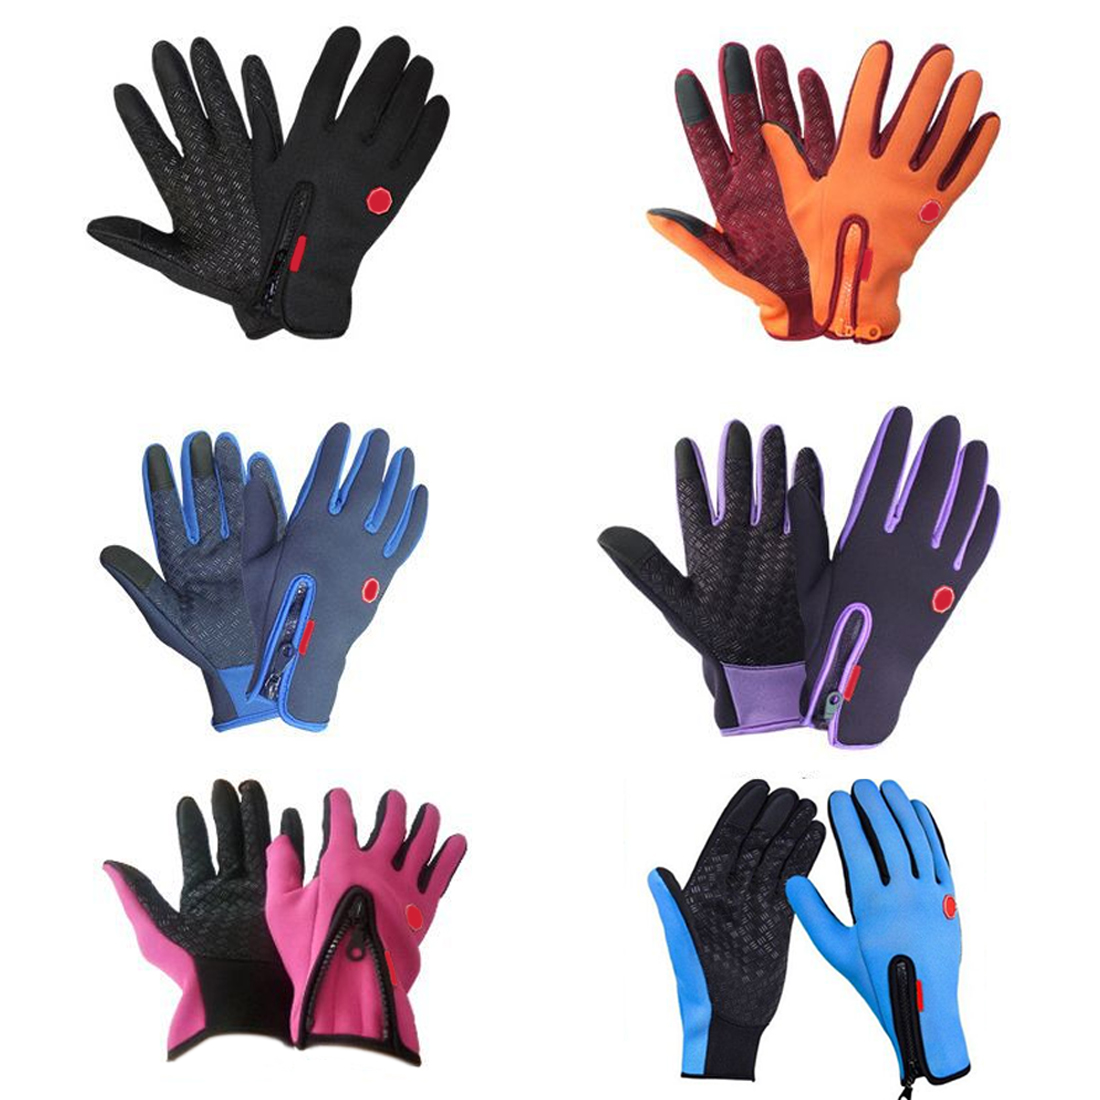 CAR-partment Motorcycle Gloves Windstopper Full Finger Ski Gloves Warm Riding Glove Outdoor Sports S M L XL Size scoyco a012 xl sporty full finger motorcycle gloves black red pair size xl